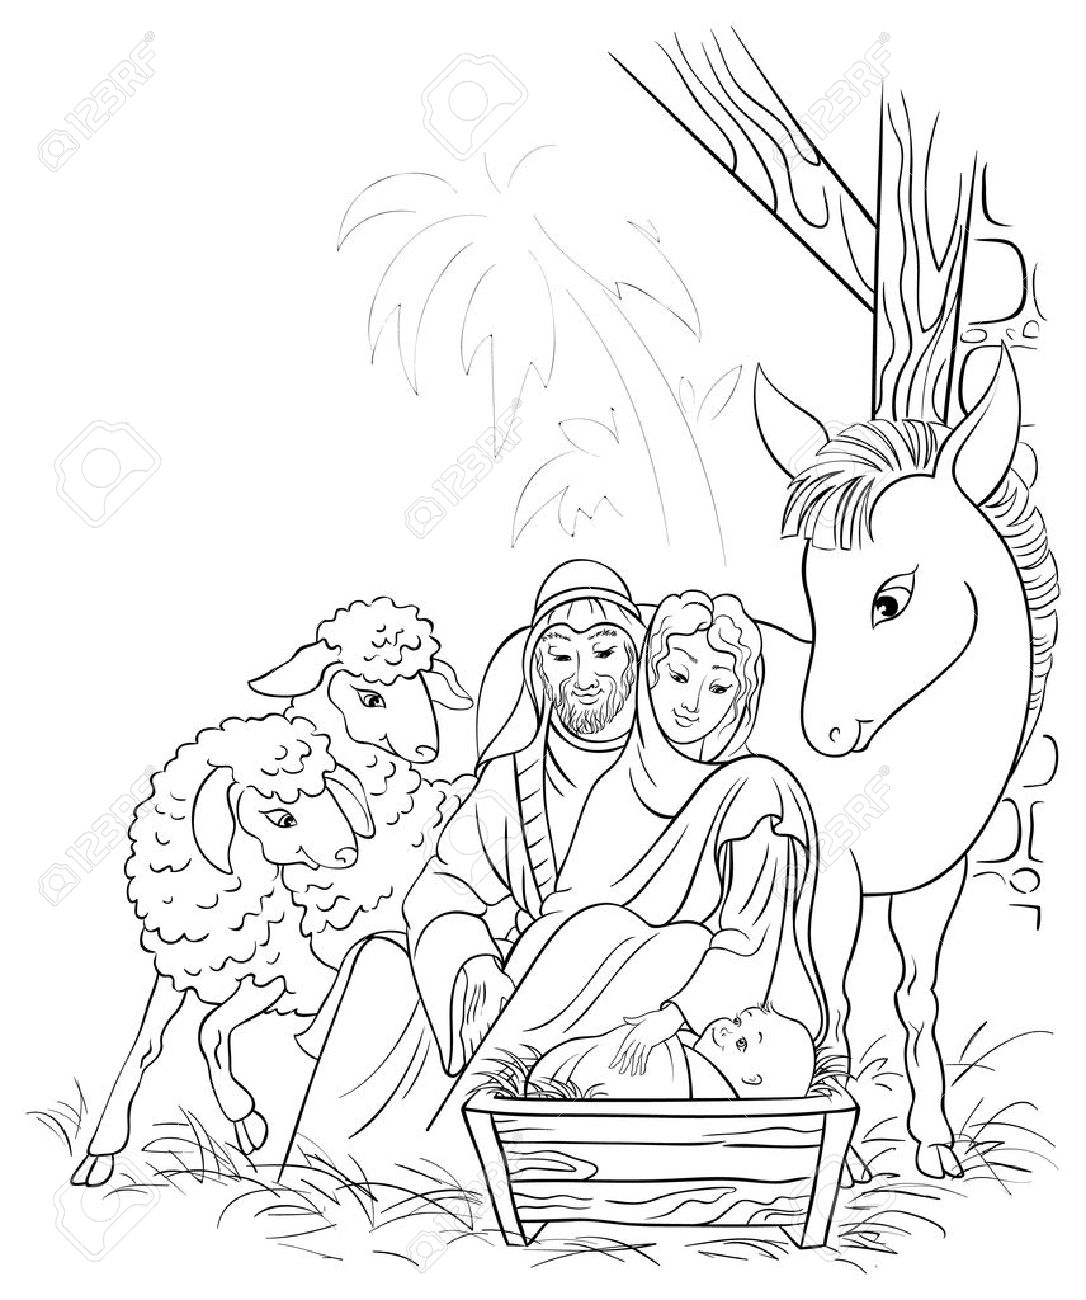 nativity line drawing at getdrawings  free download